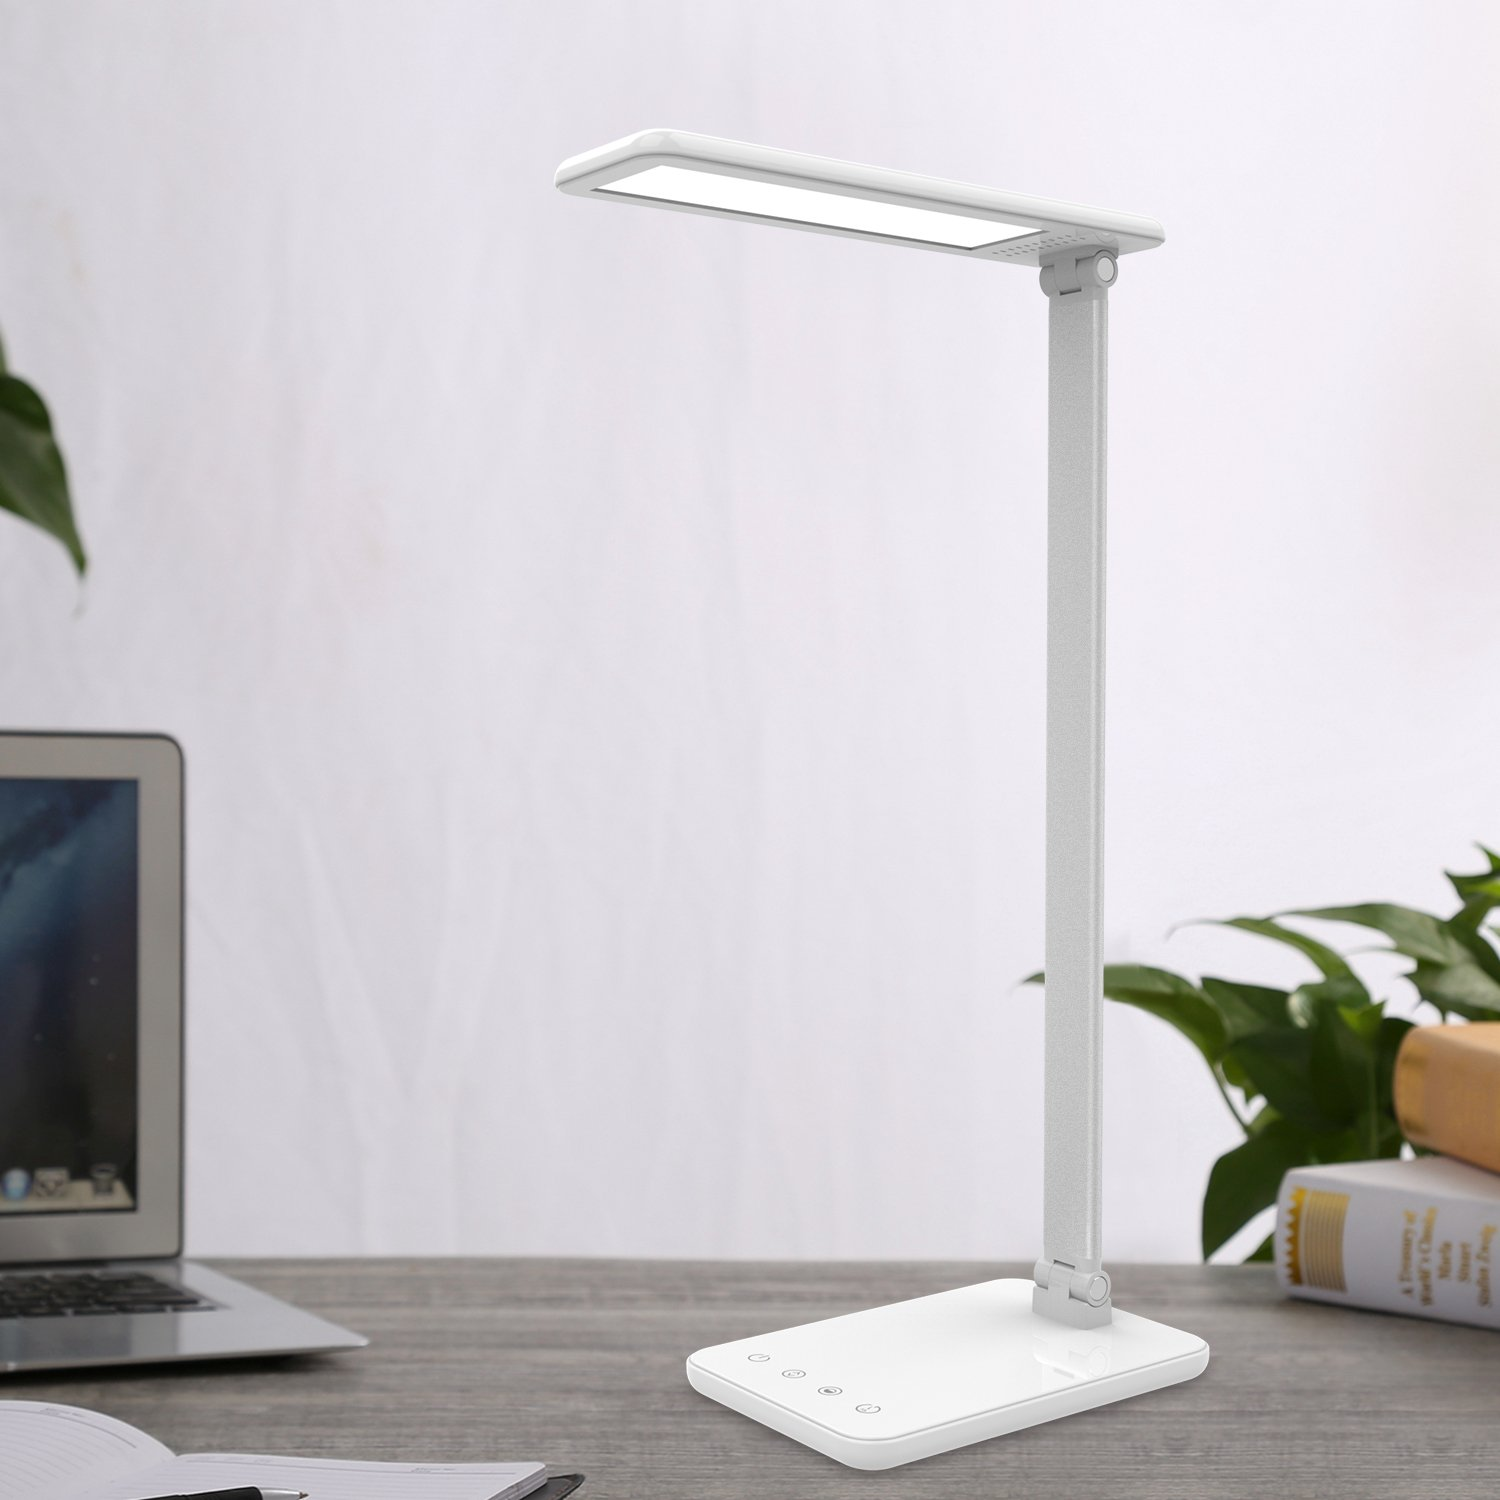 MoKo Dimmable LED Desk Lamp, 8W Touch-Sensitive Control Eye-Caring Working / Reading Table Lamp, Continuously Dimmable Brightness & Color Temperature, 1-Hour Auto Timer, Adjustable Arm & Head - WHITE by MoKo (Image #8)